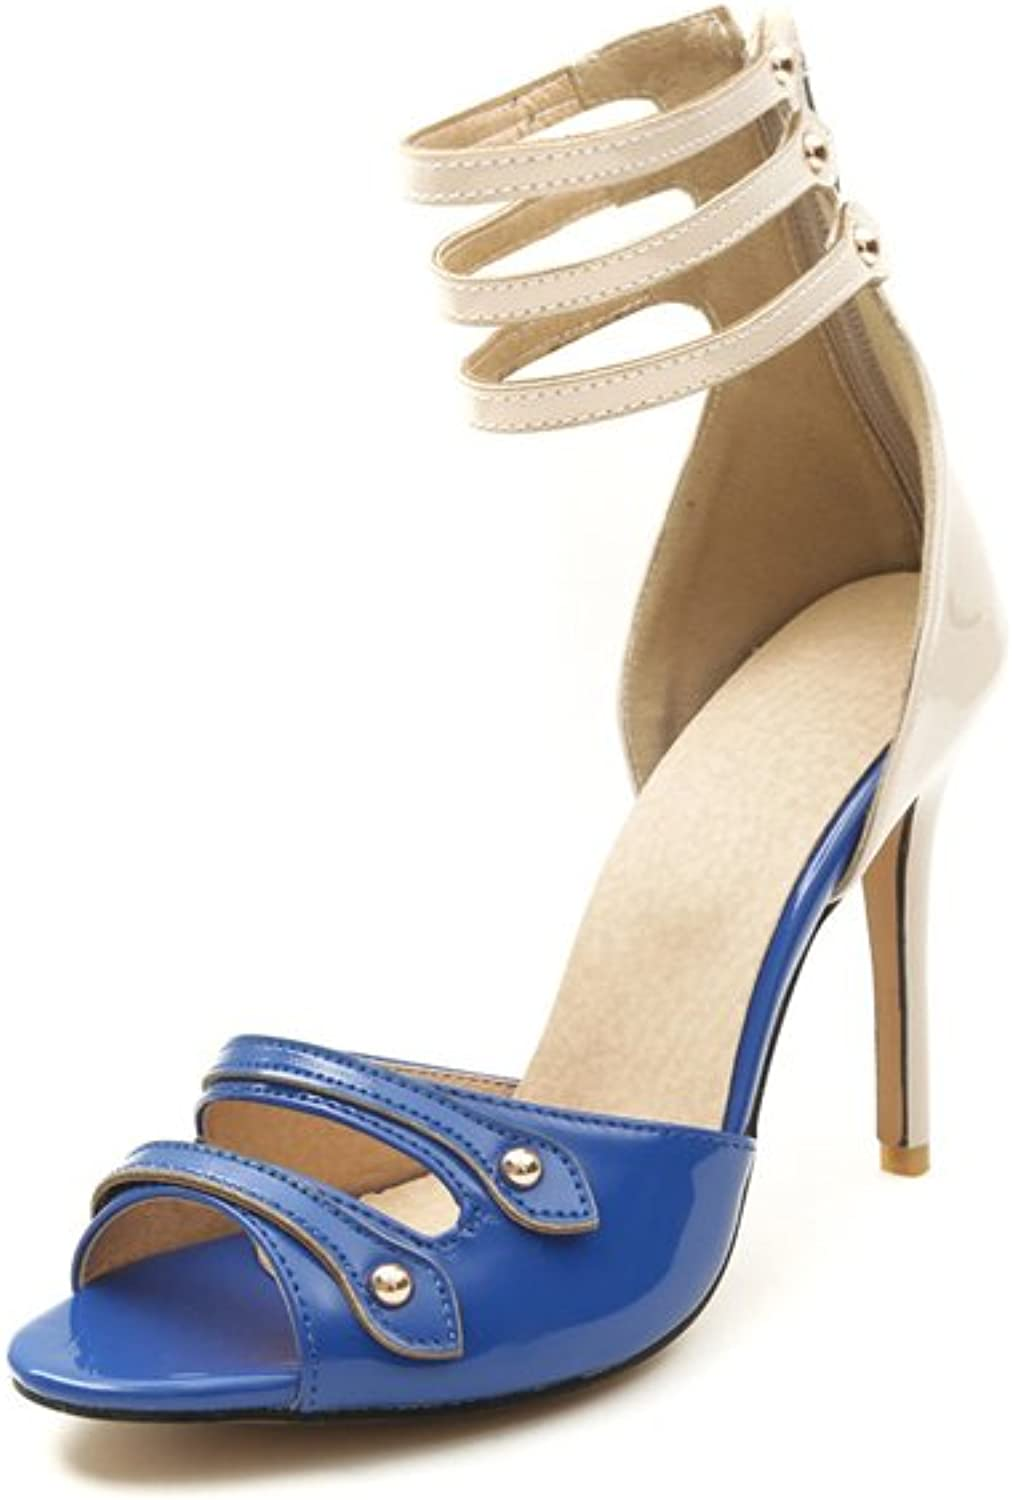 Women's shoes Leather Spring Summer Pump Heels Stiletto Heel Peep Toe Buckle Party & Evening Party & Evening